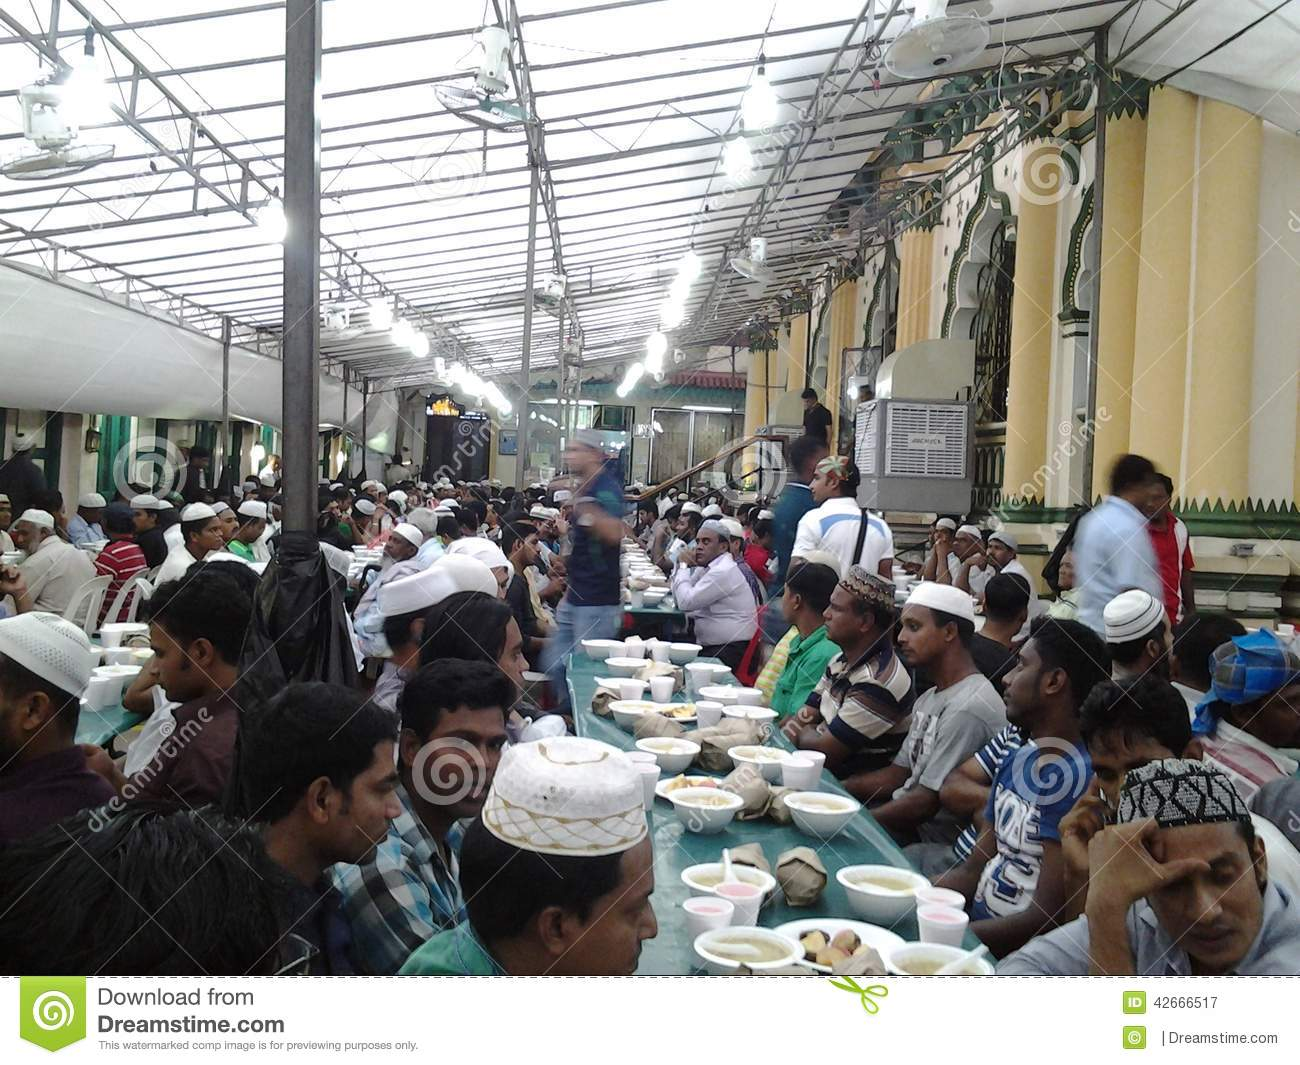 Ifter in Abdul Gafor Mosque, Singapore